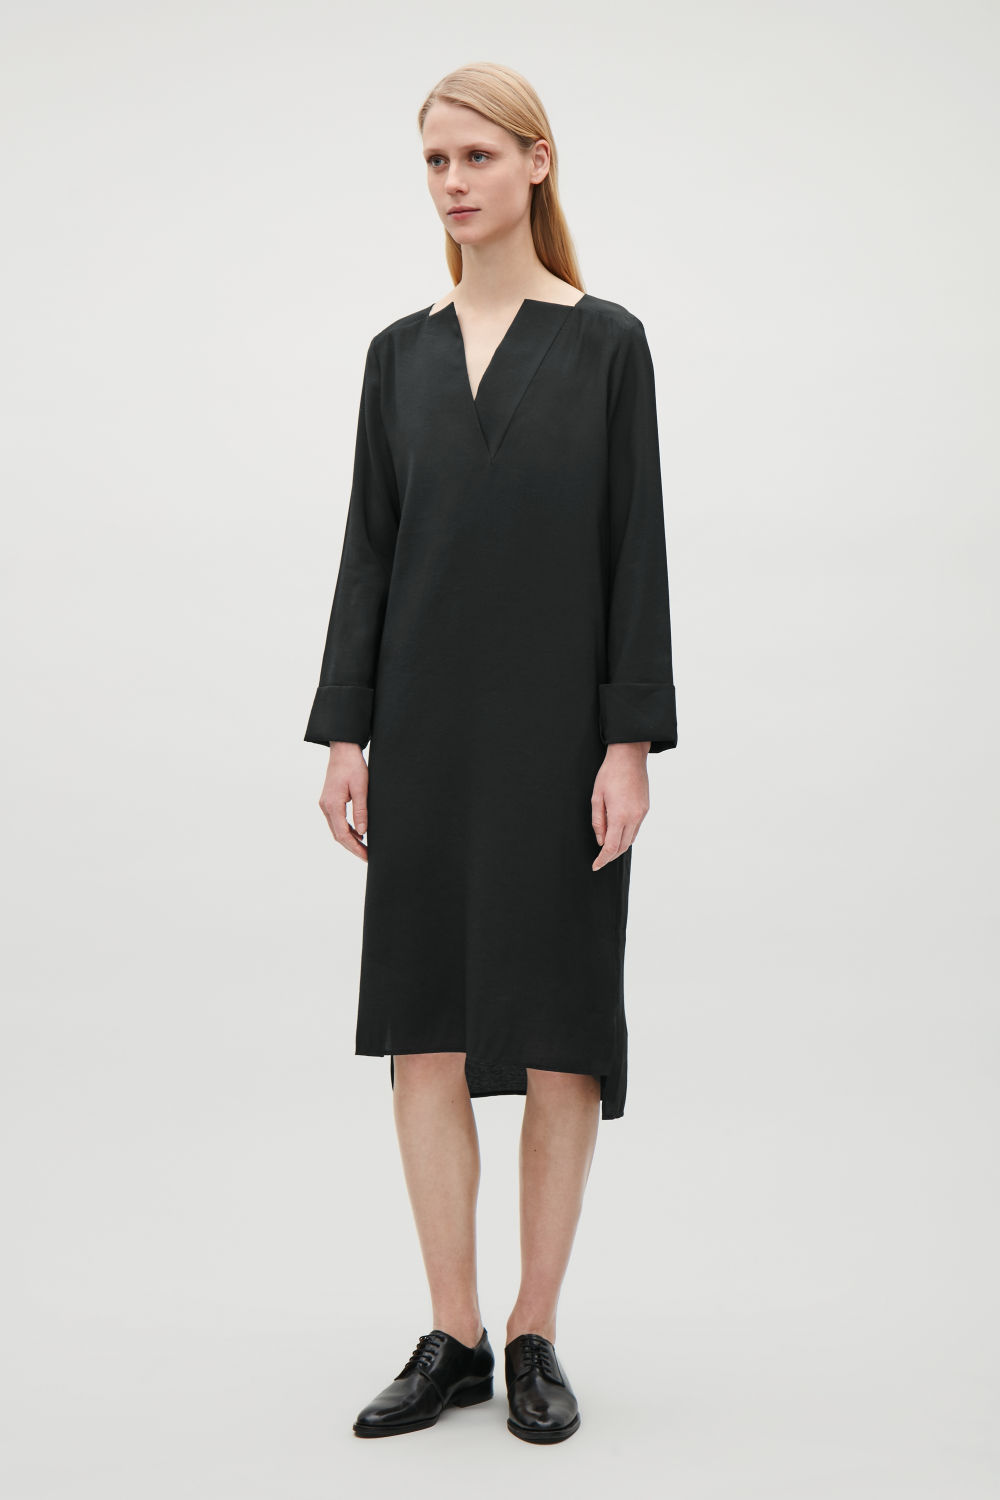 COS DRESS WITH TURN-UP CUFFS,Black